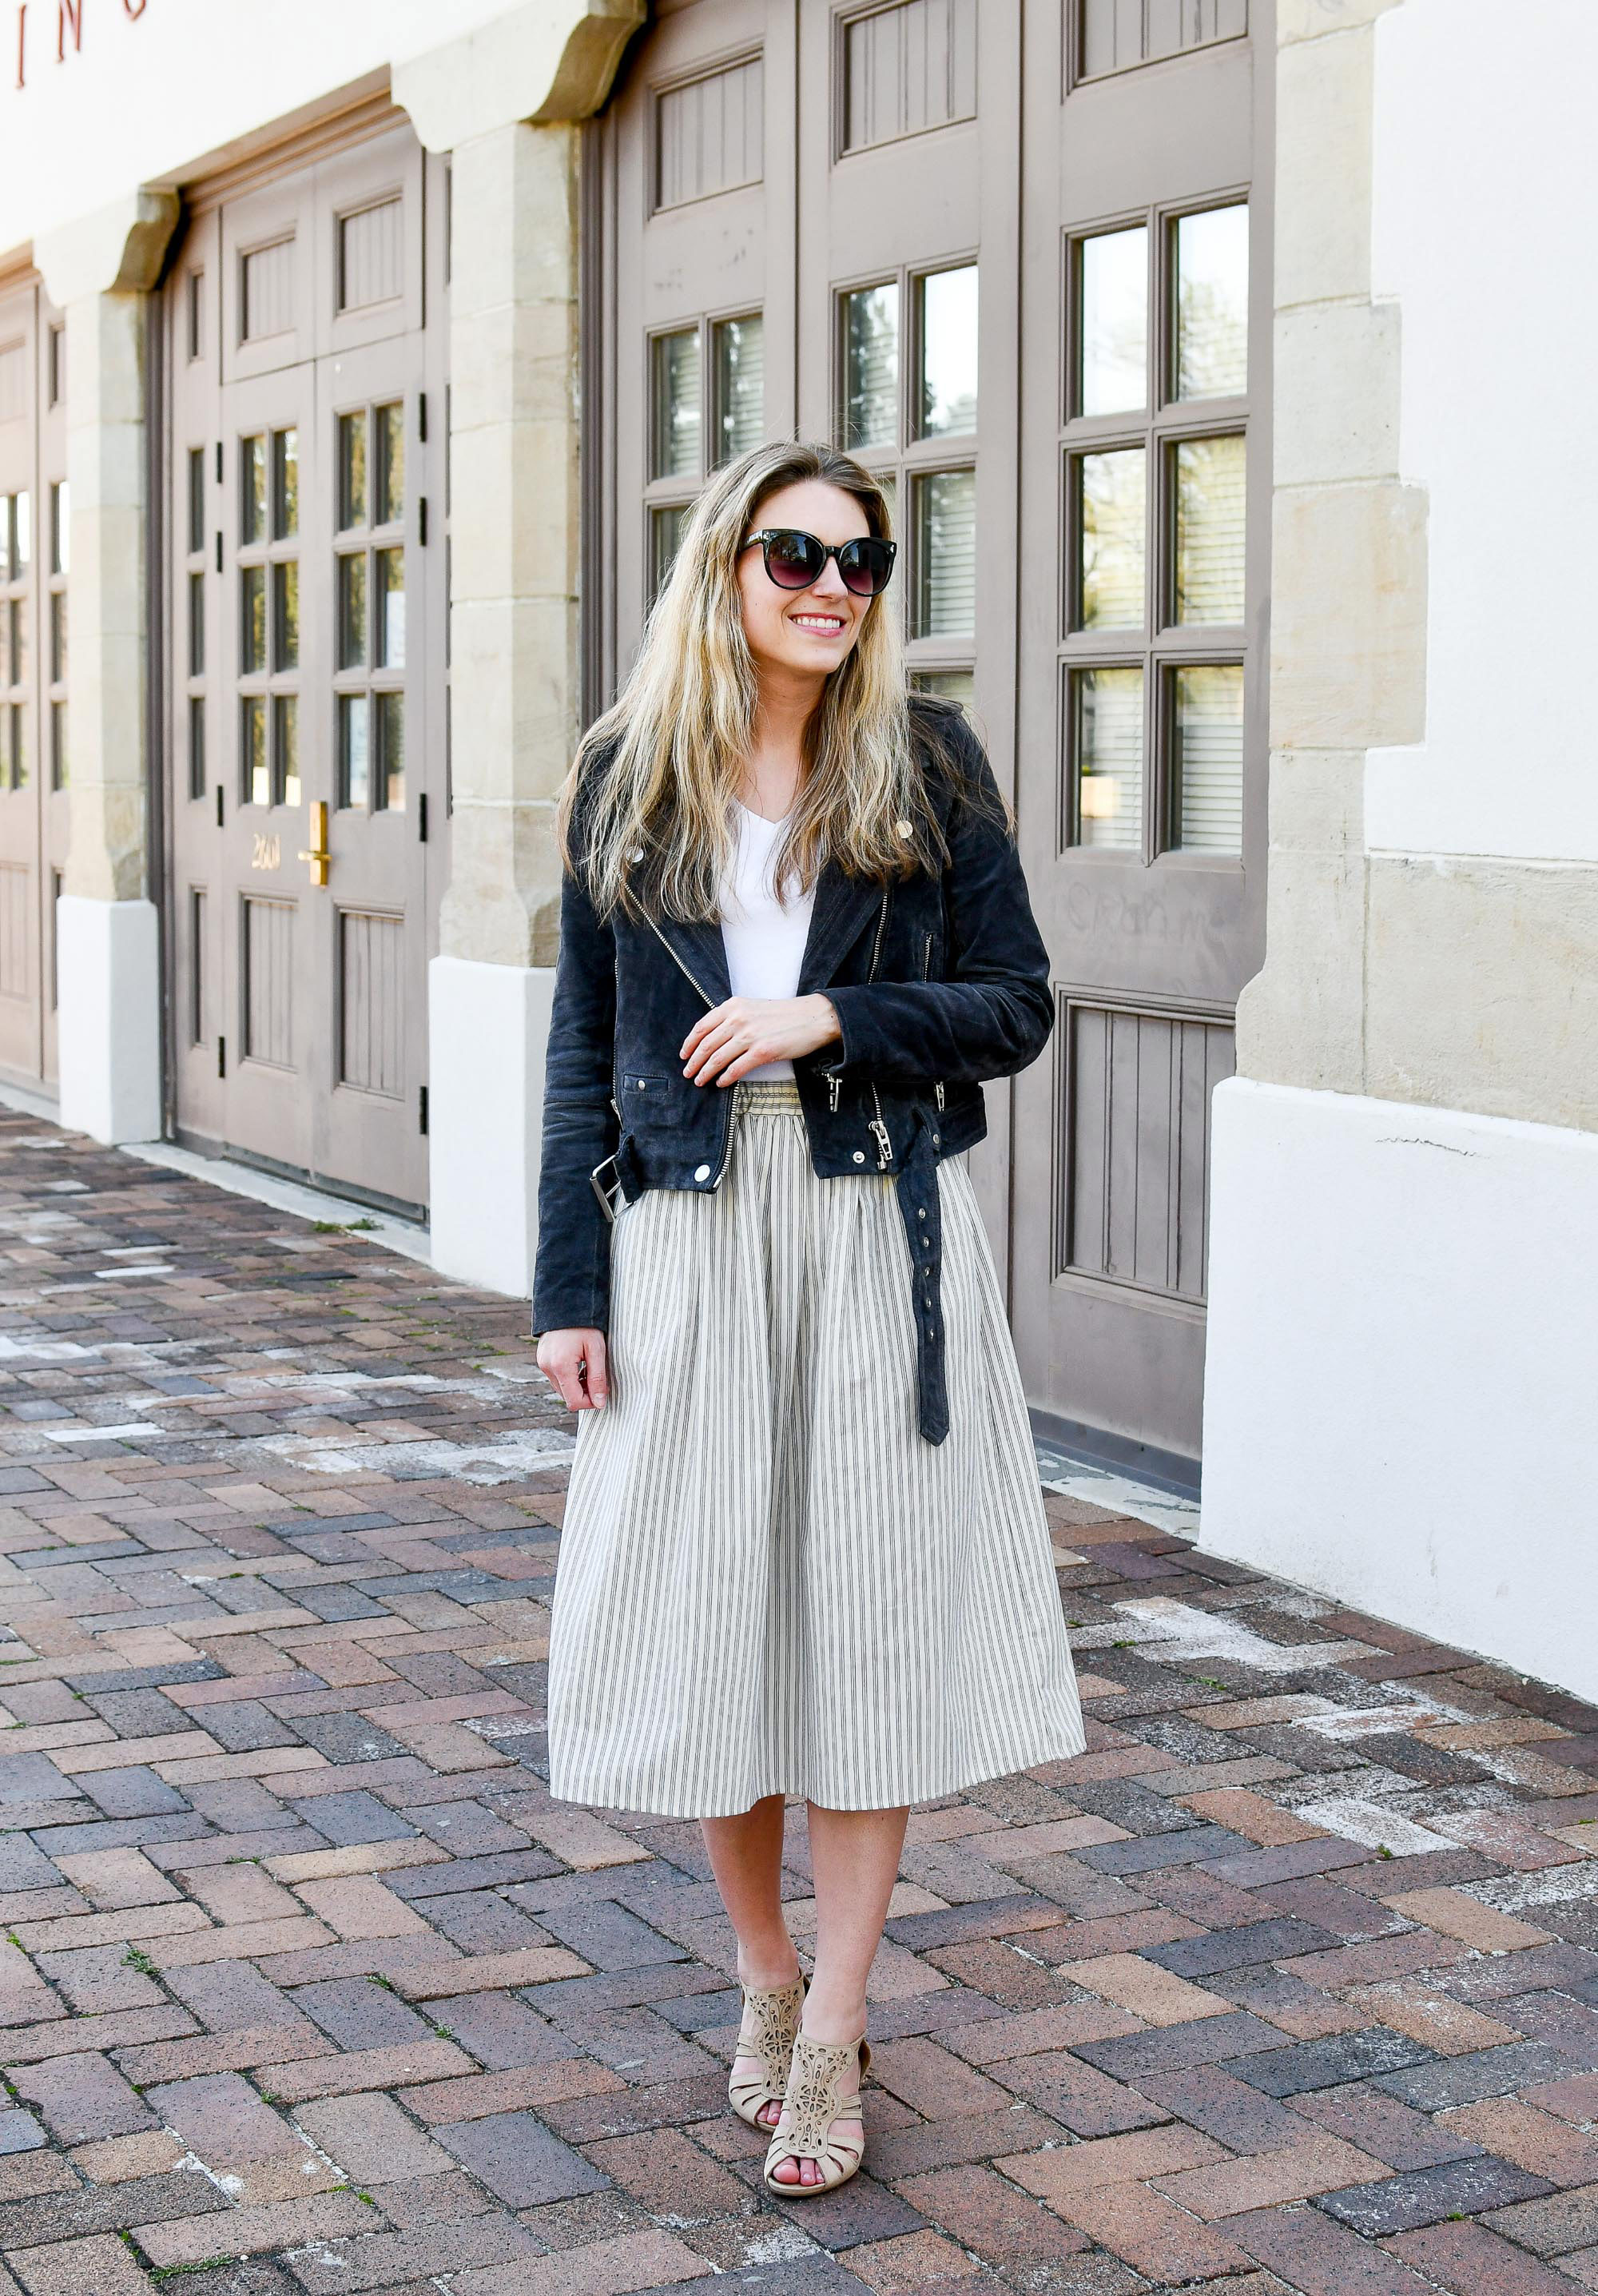 Favorite outfit: A little sweet, a little sassy — Cotton Cashmere Cat Hair